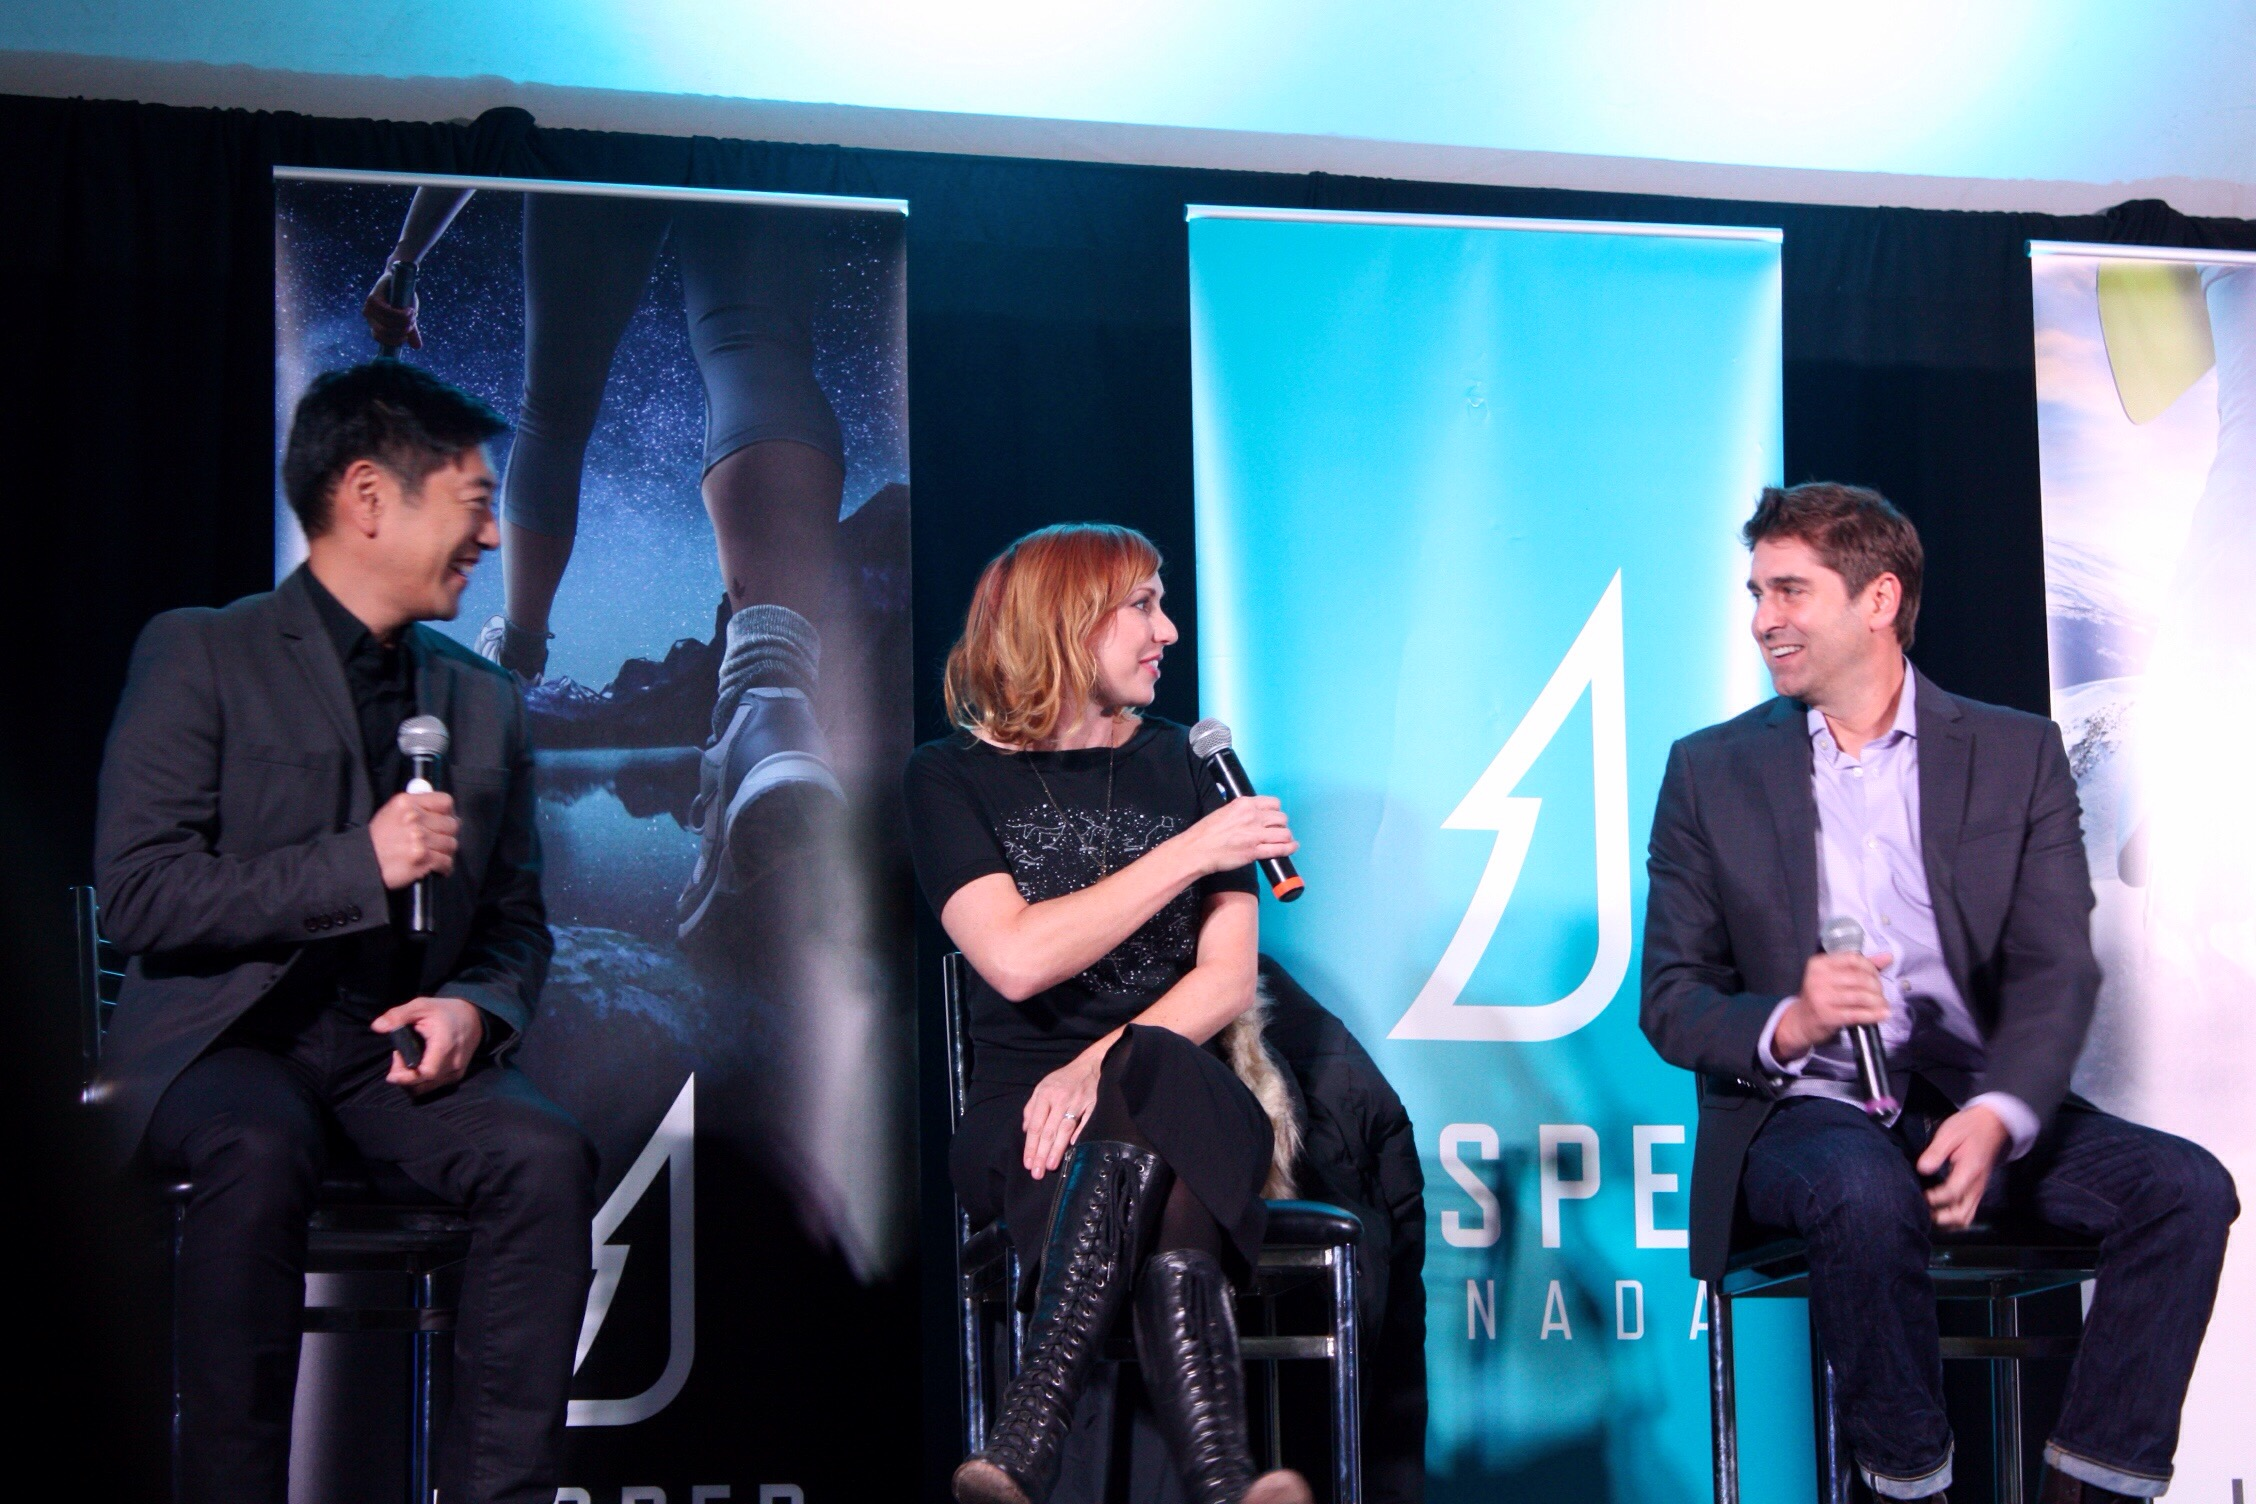 Grant Imahara, Kari Byron and Tory Belleci, former co-hosts of the Discovery Channel's Mythbusters spoke on Saturday evening and shared stories of their time on the show and what was happening with them now. Photo copyright Sheri Landry.